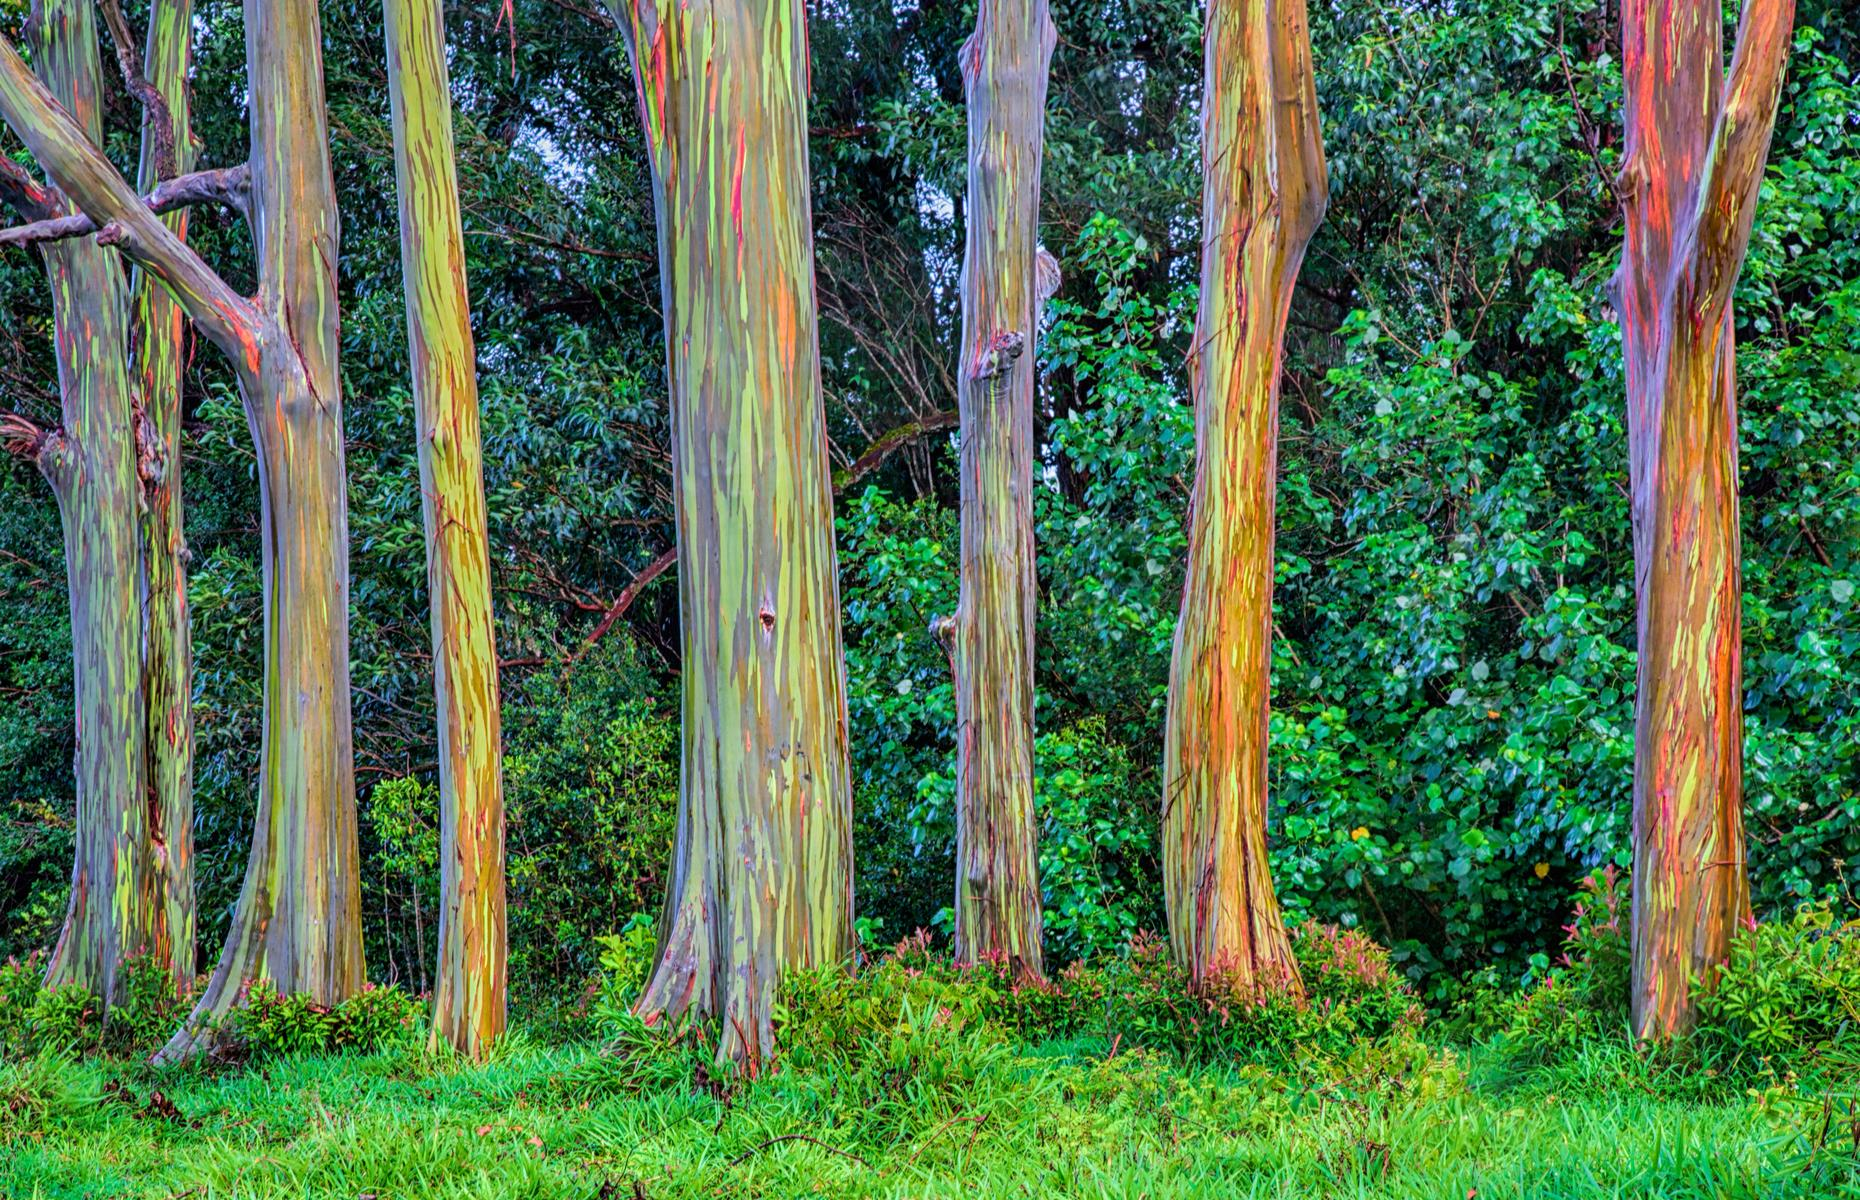 Slide 3 of 27: The lines on the tree trunks show up as the bark sheds off in strips, revealing technicolor hues of orange, green and red below. On top of looking the part, these psychedelic trees smell lovely too. Now check out more amazing images of the world's most colorful natural wonders.